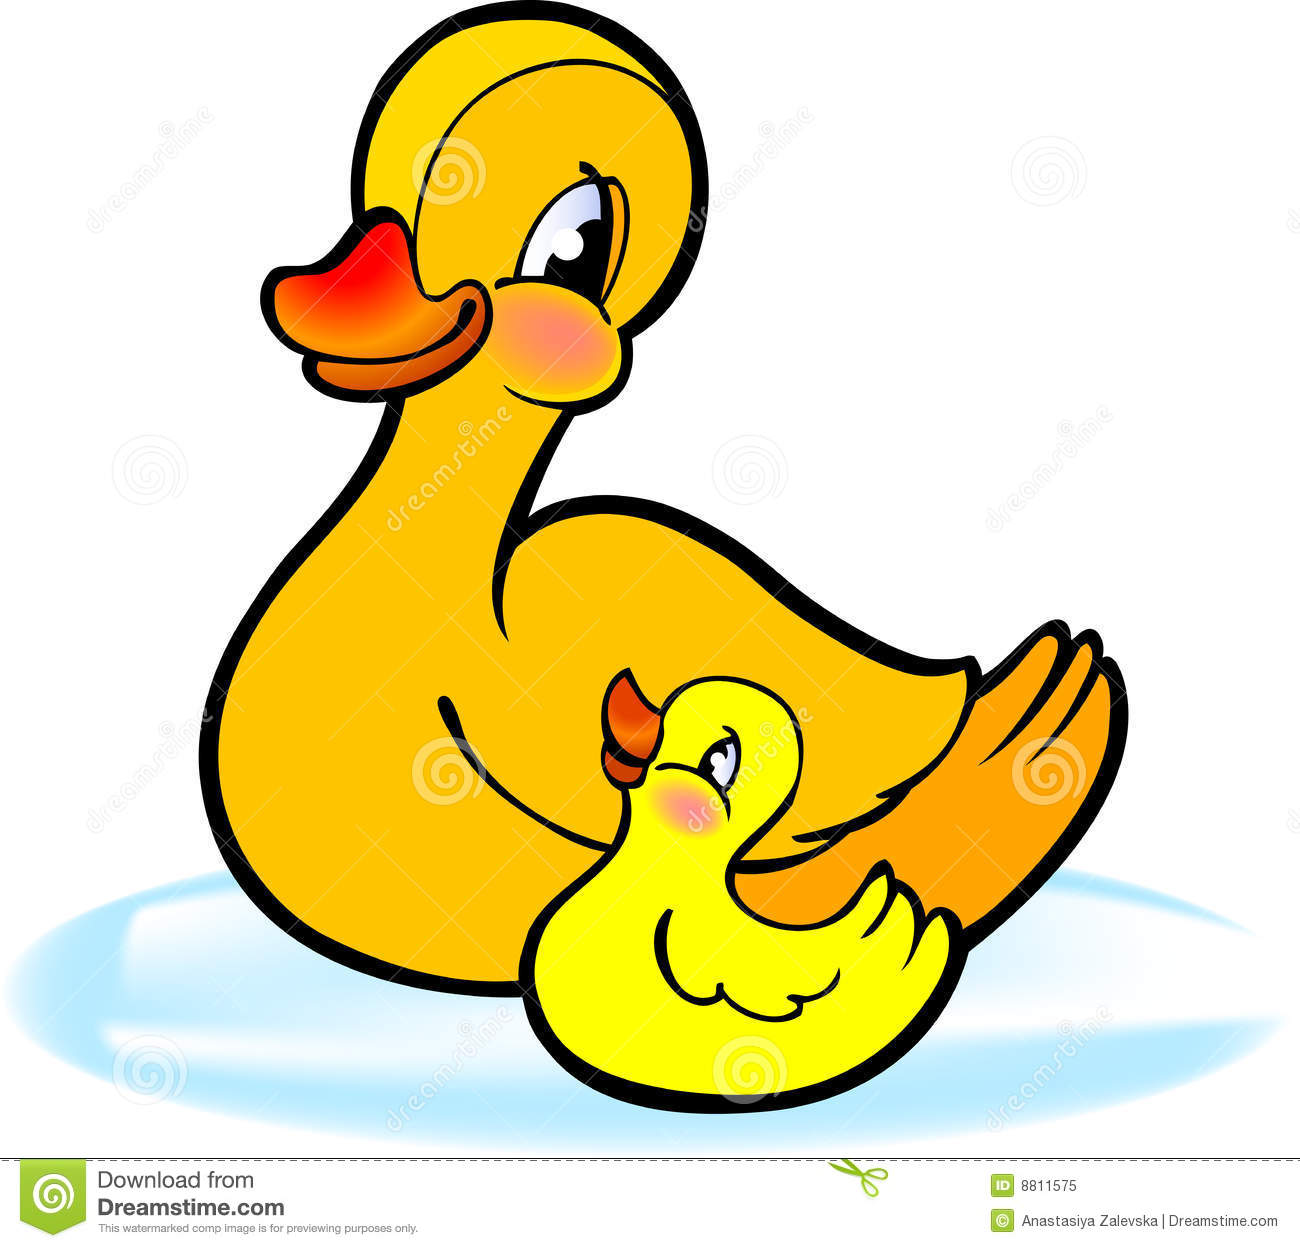 Mama duck clipart clip art library download Mama duck clipart - ClipartFest clip art library download